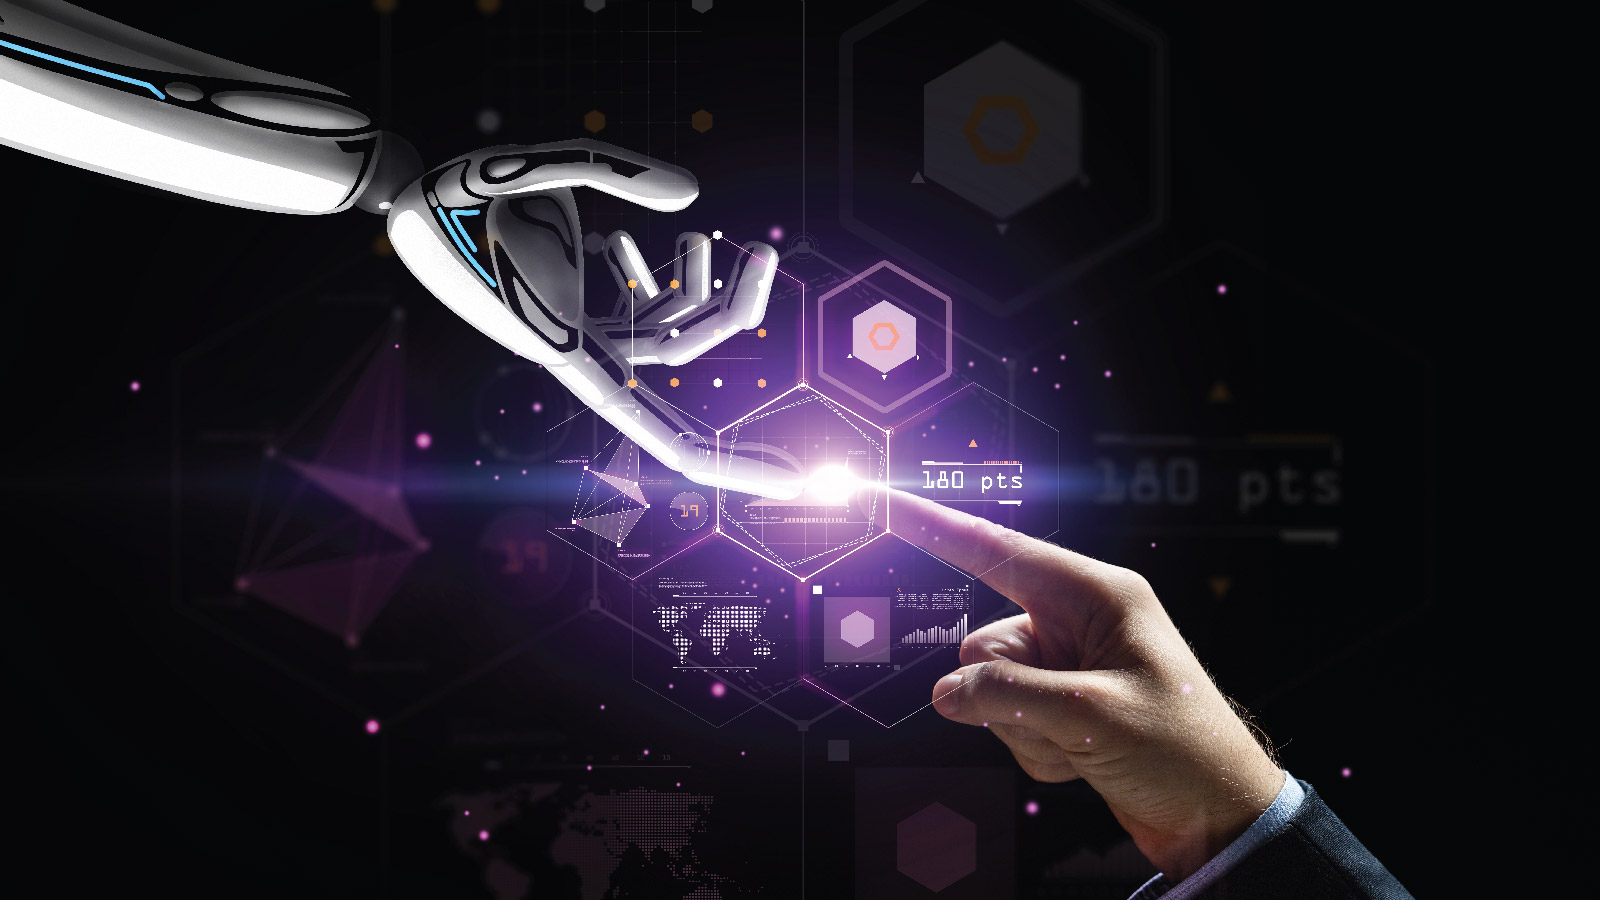 AI, Artificial Intelligence, Internet of Behavior (IoB), facial recognition, big data, location tracking, Gartner, Blockchain, Africa, Asia-Pacific, Bring Your Own Device (BYOD), IT, Artificial Intelligence, Virtual Reality, Augmented Reality, Artificial Emotional Intelligence (AEI), Robotics,